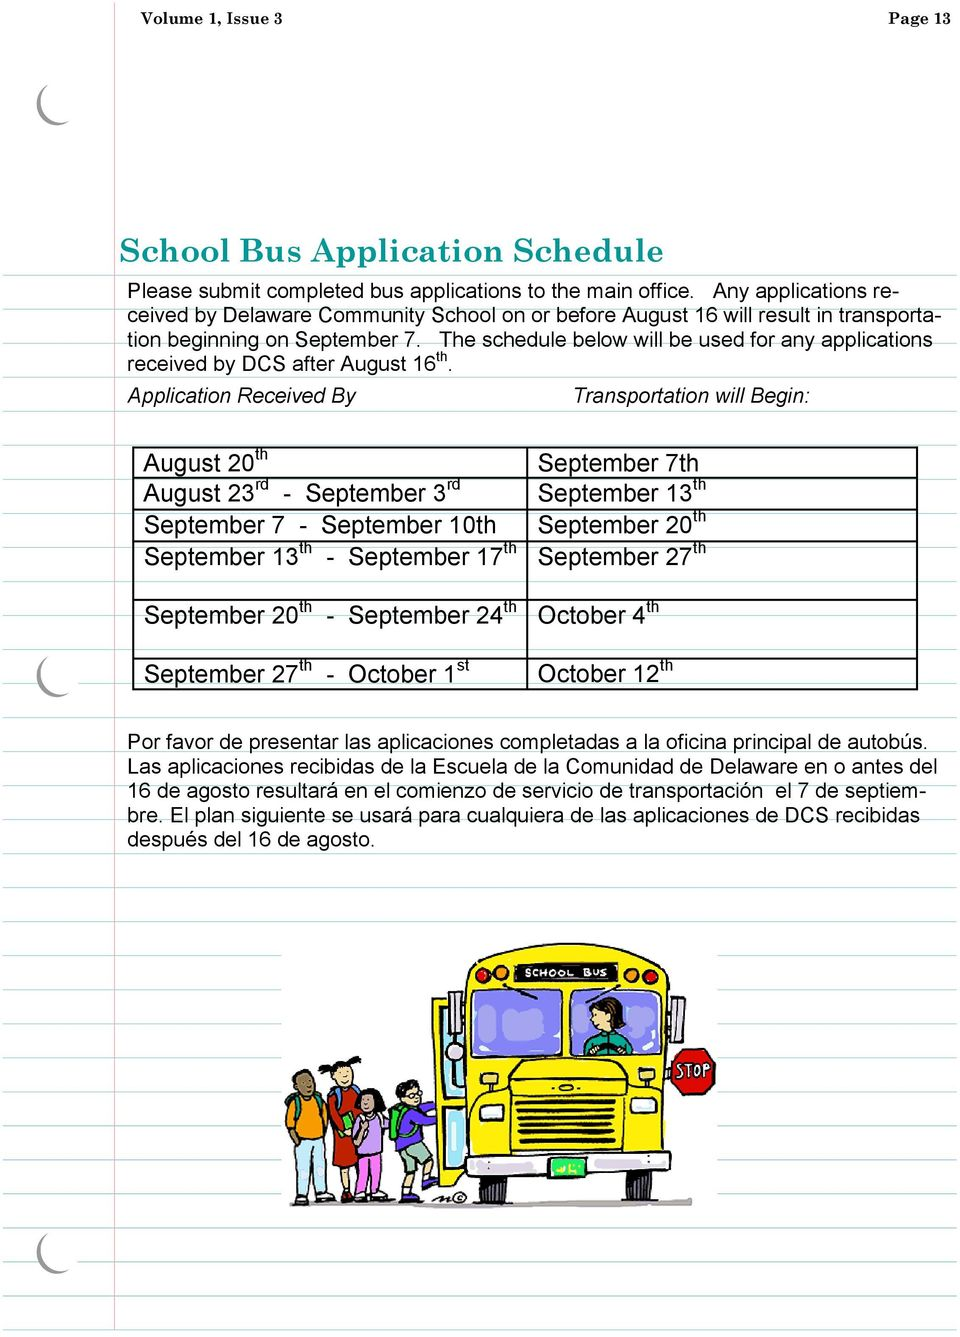 The schedule below will be used for any applications received by DCS after August 16 th.